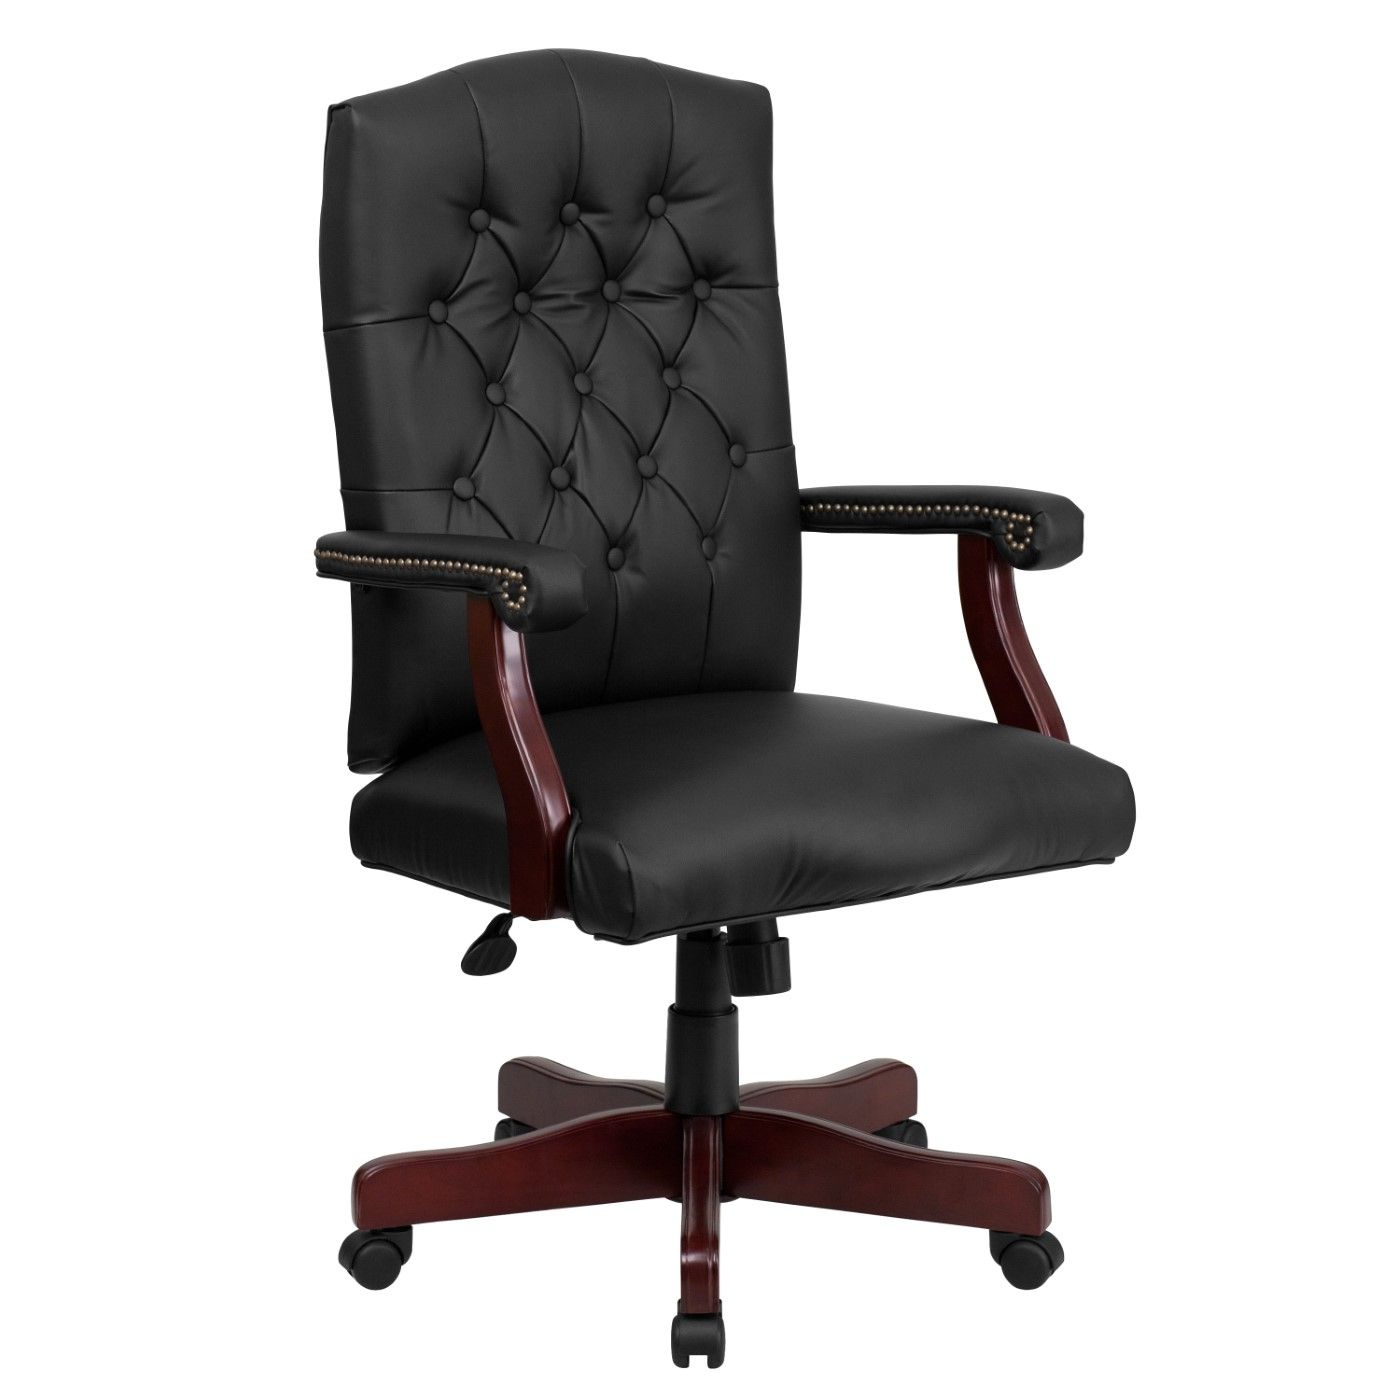 Martha Washington Black LeatherSoft Executive Swivel Office Chair with Arms